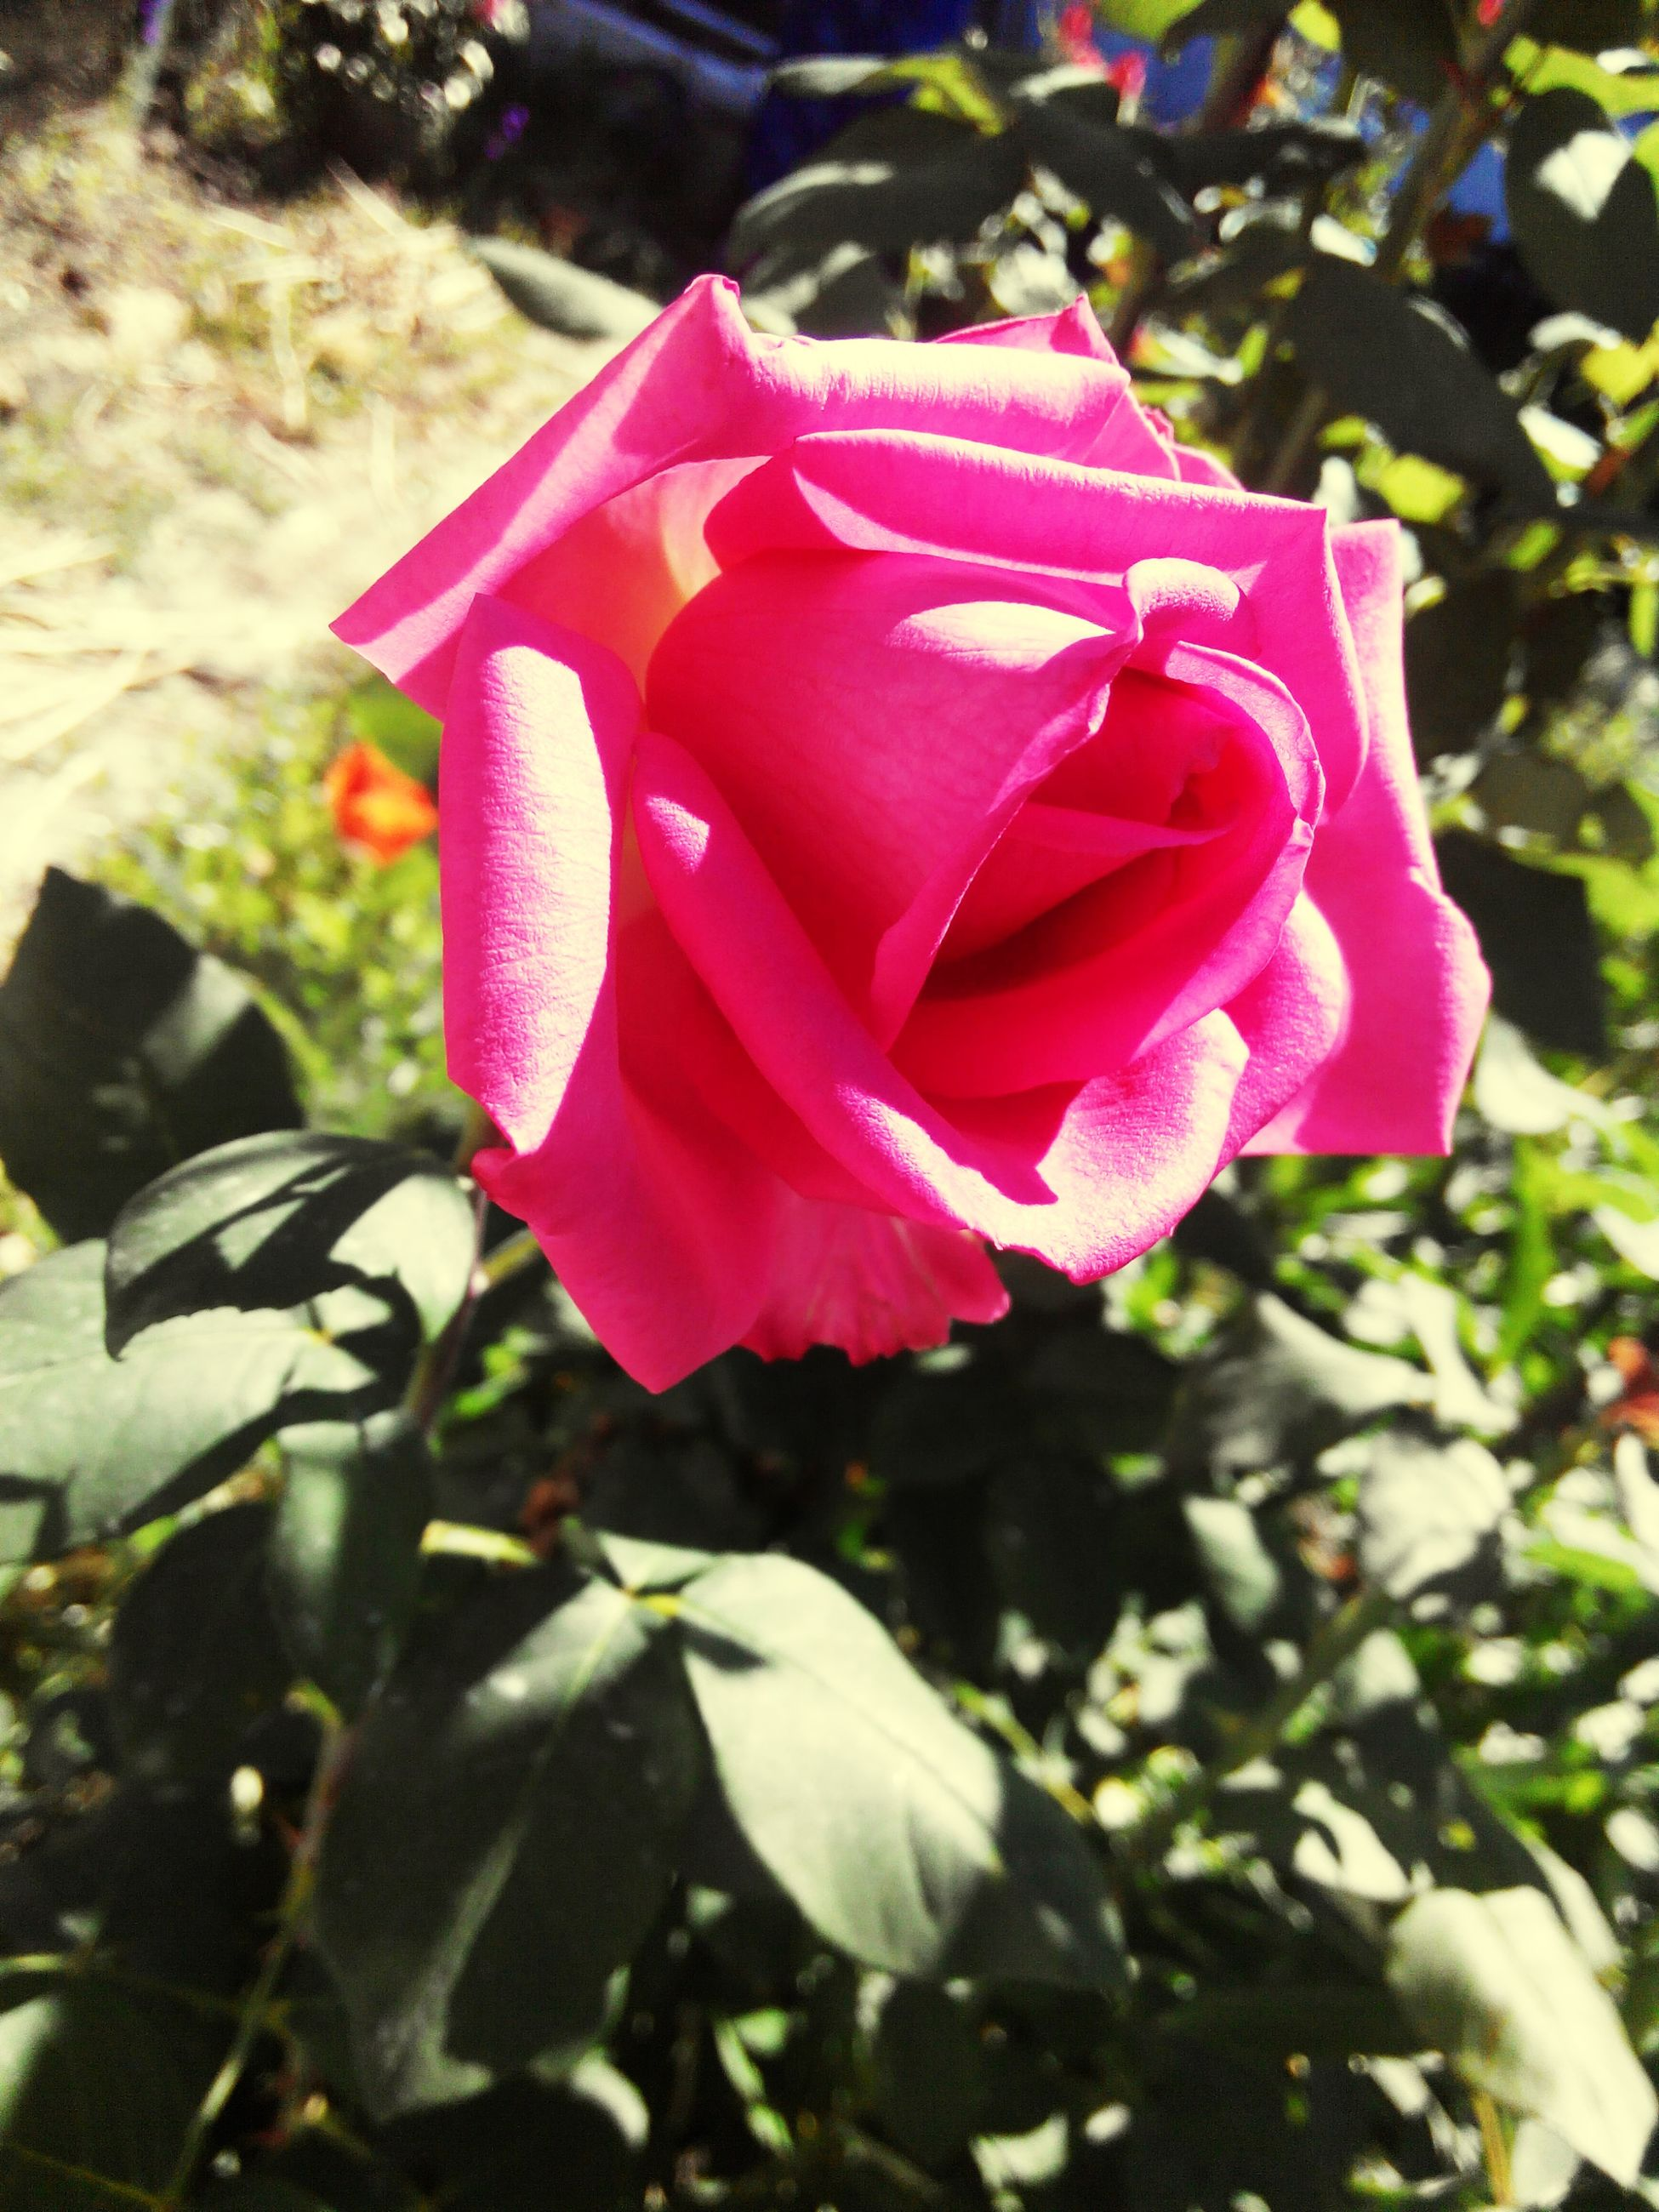 flower, petal, rose - flower, flower head, fragility, freshness, pink color, close-up, focus on foreground, single flower, beauty in nature, blooming, growth, nature, red, rose, plant, pink, outdoors, in bloom